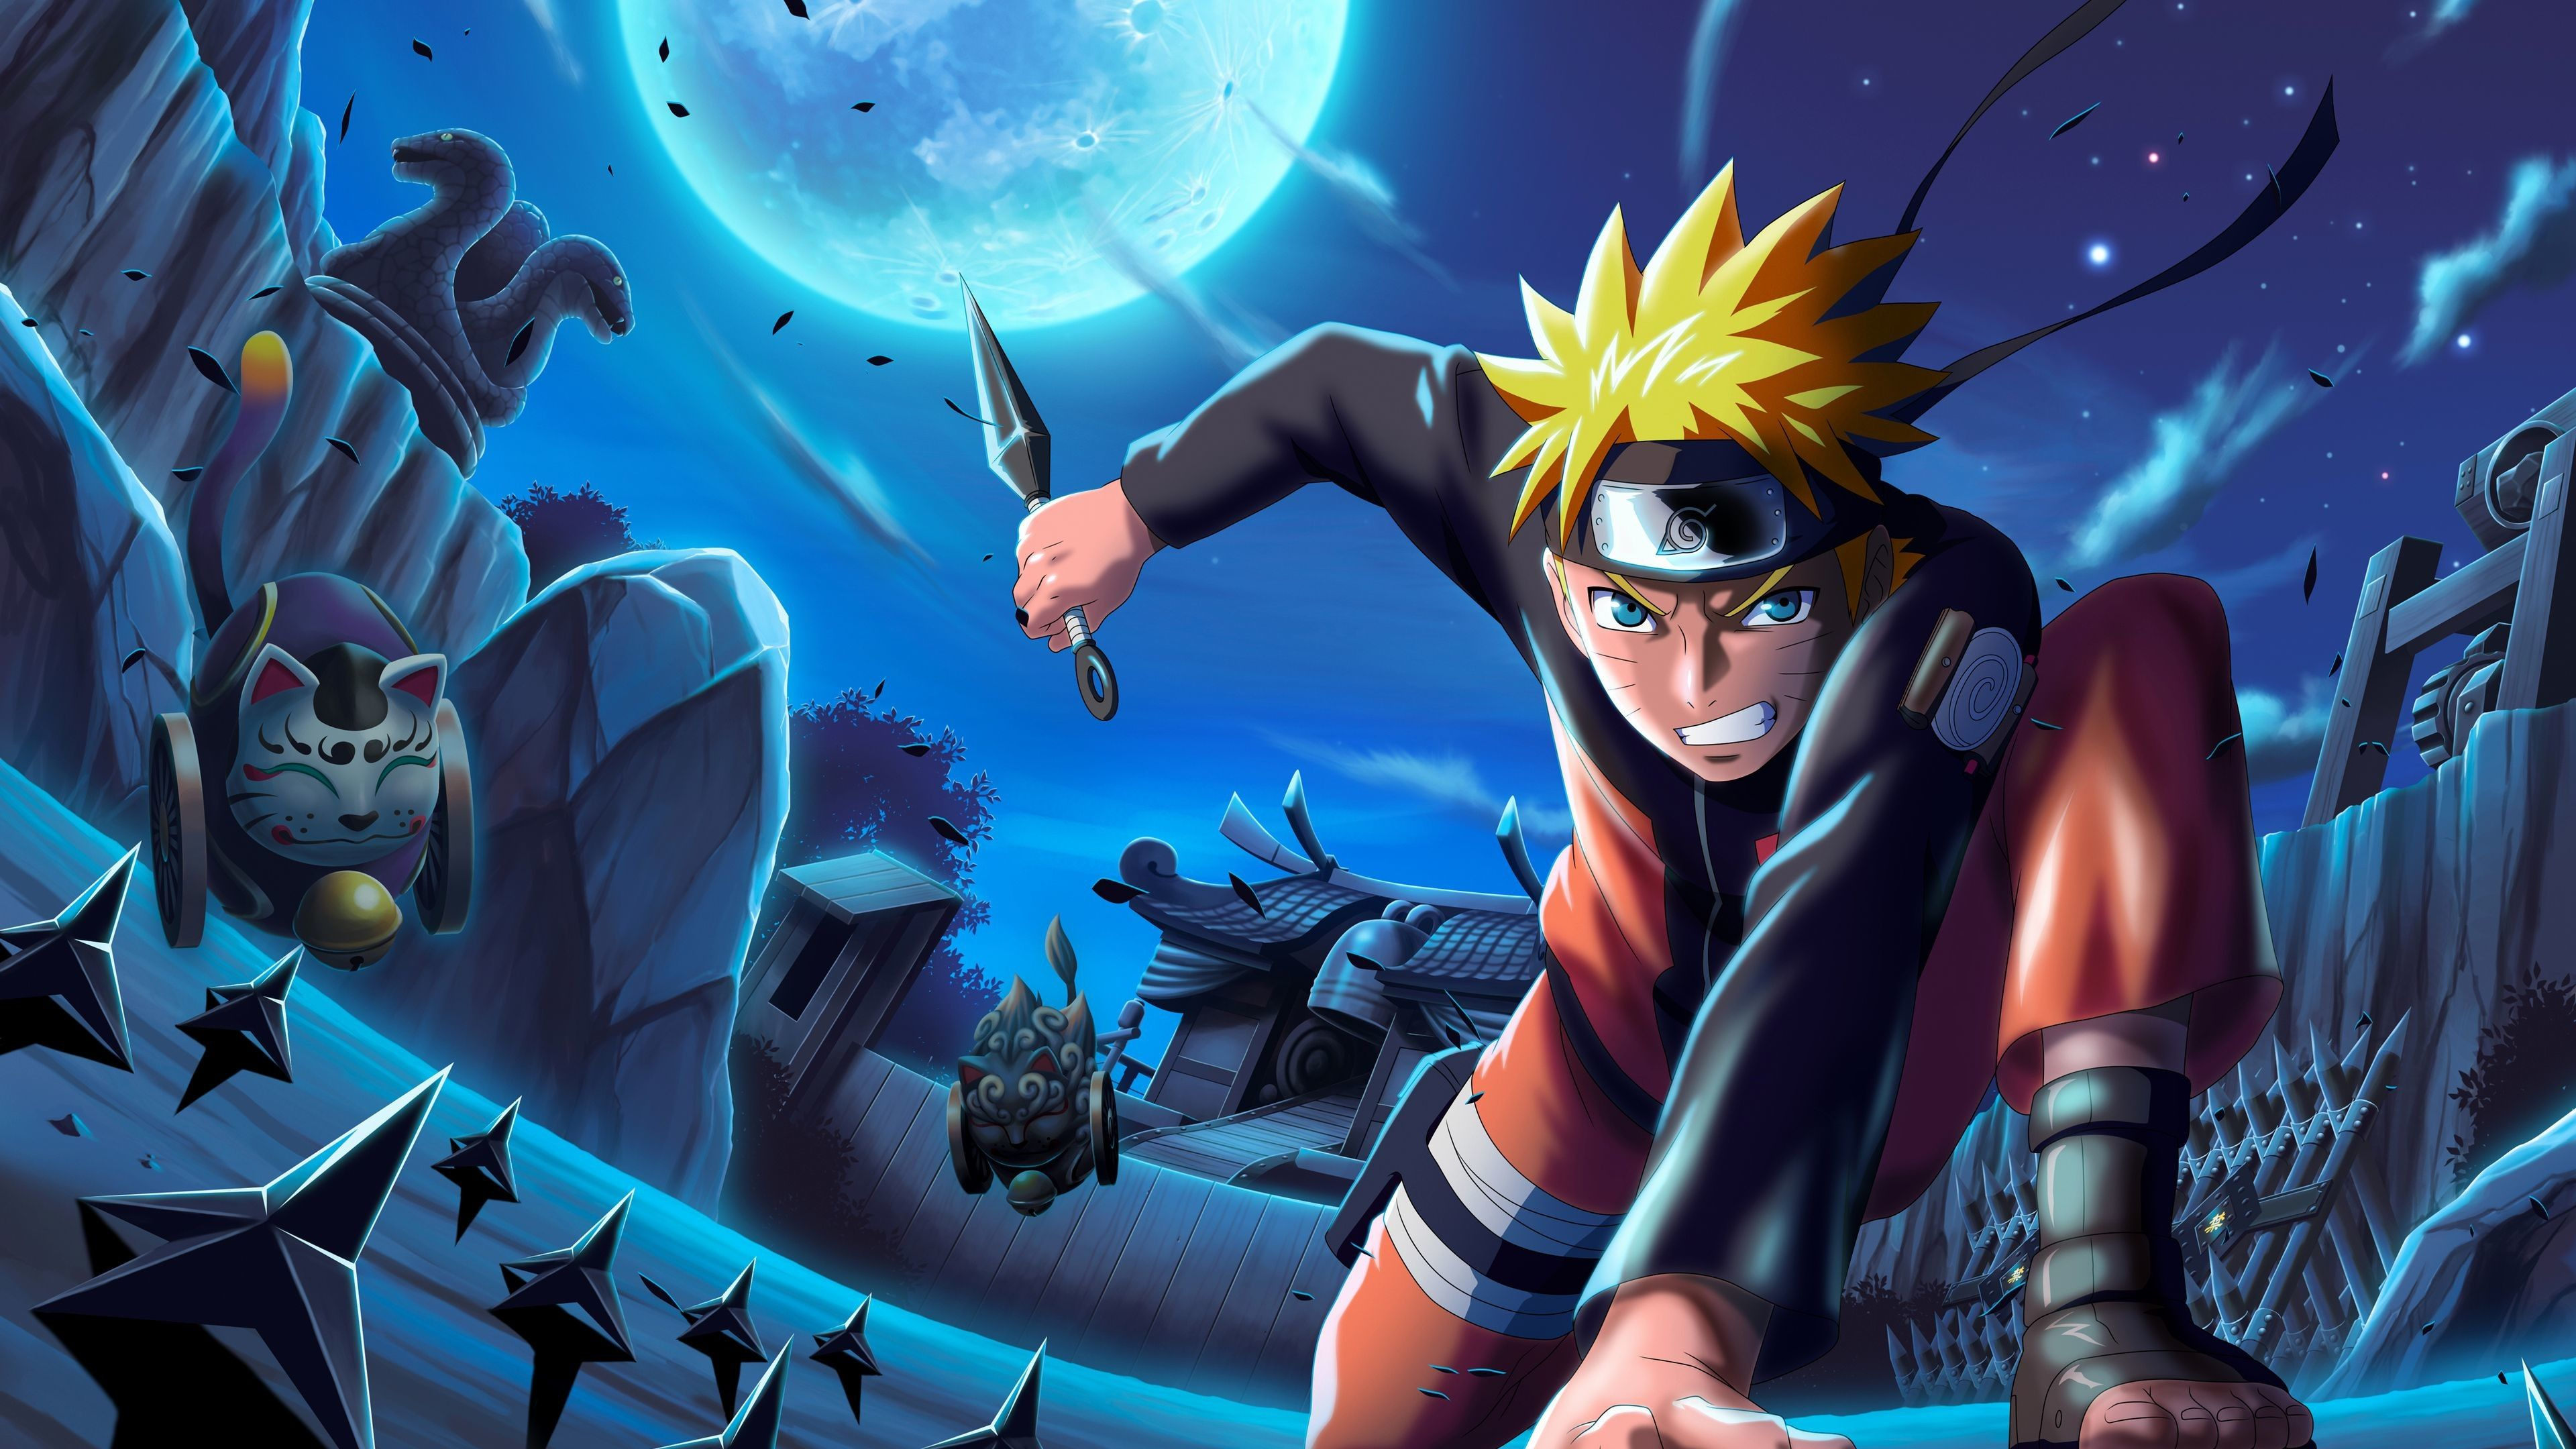 Wallpaper Naruto 3d Android Naruto Wallpapers Hd 2018 73 Pictures Baby Kurama Wallpapers Hd For I Naruto Wallpaper Best Naruto Wallpapers Wallpaper Naruto 3d